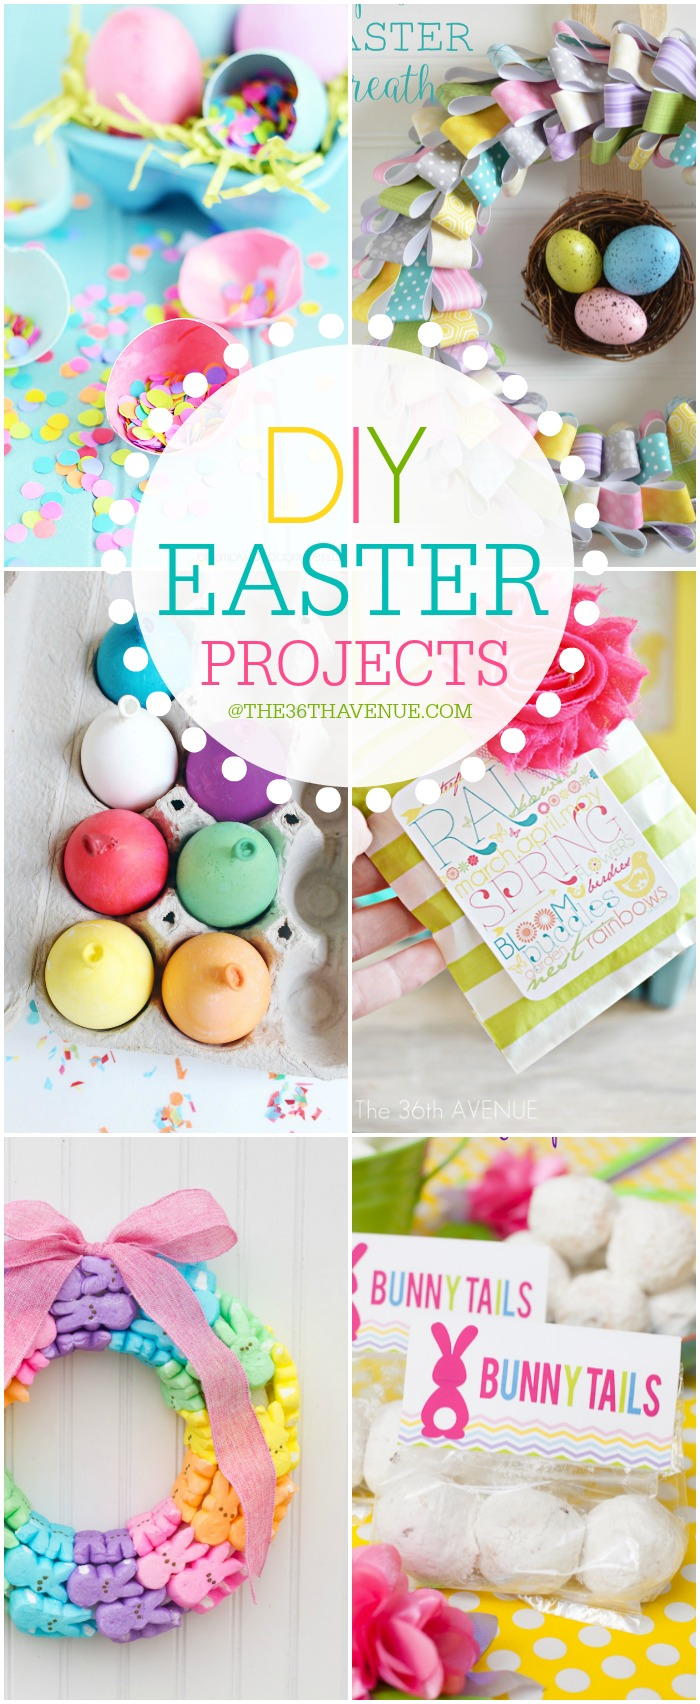 DIY Easter Crafts and Decor Ideas that you can make.